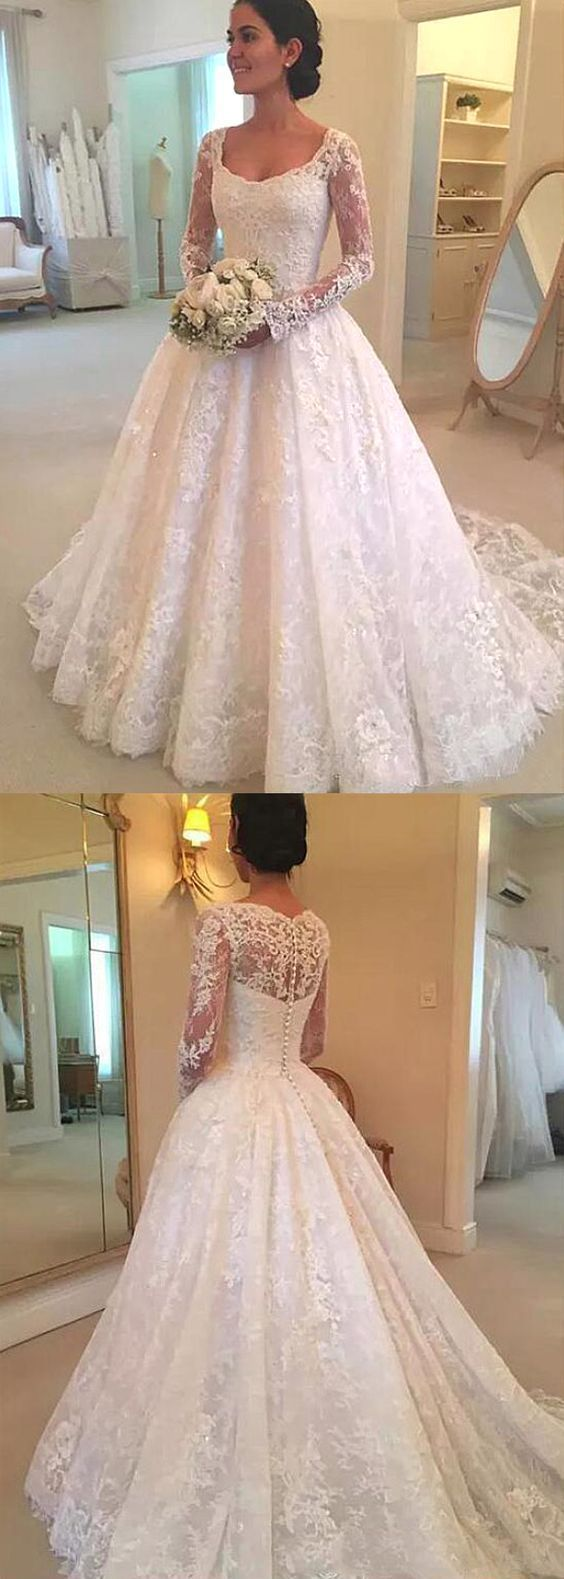 Lace ball gown wedding dress with long sleeves fashion bridal